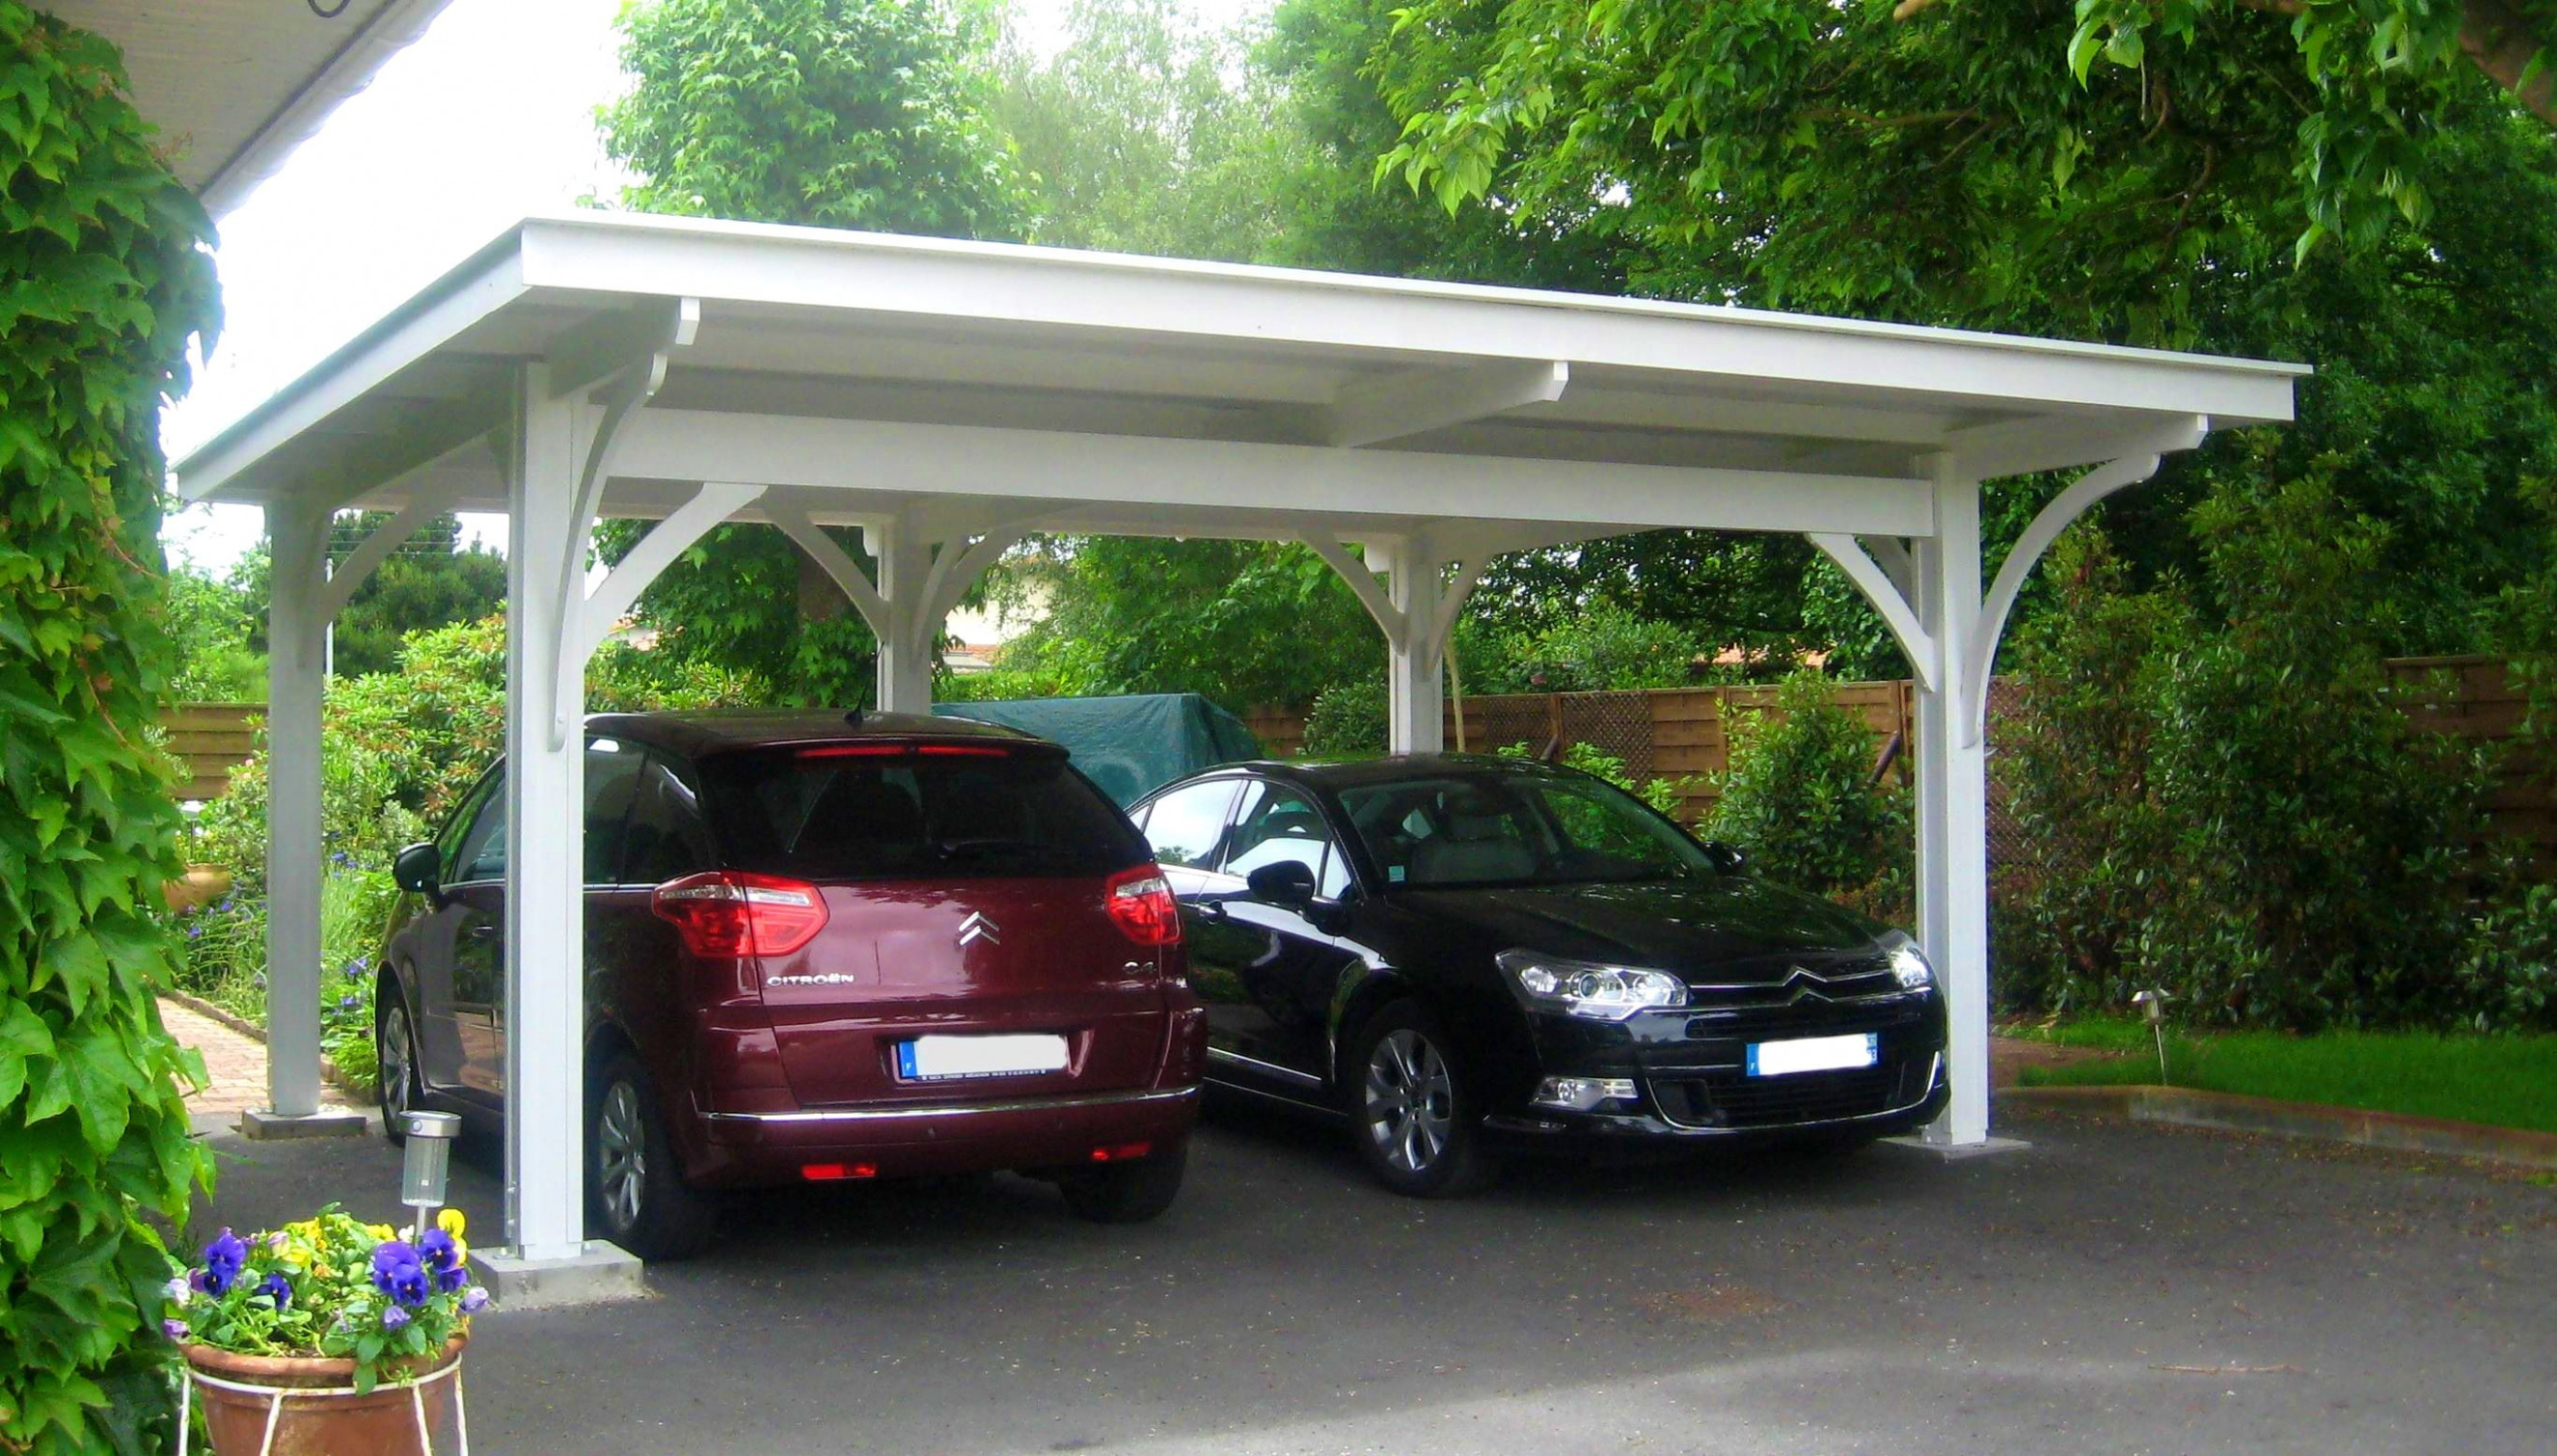 Bedroom:Agreeable Images About Carport Ideas Designs Car ..